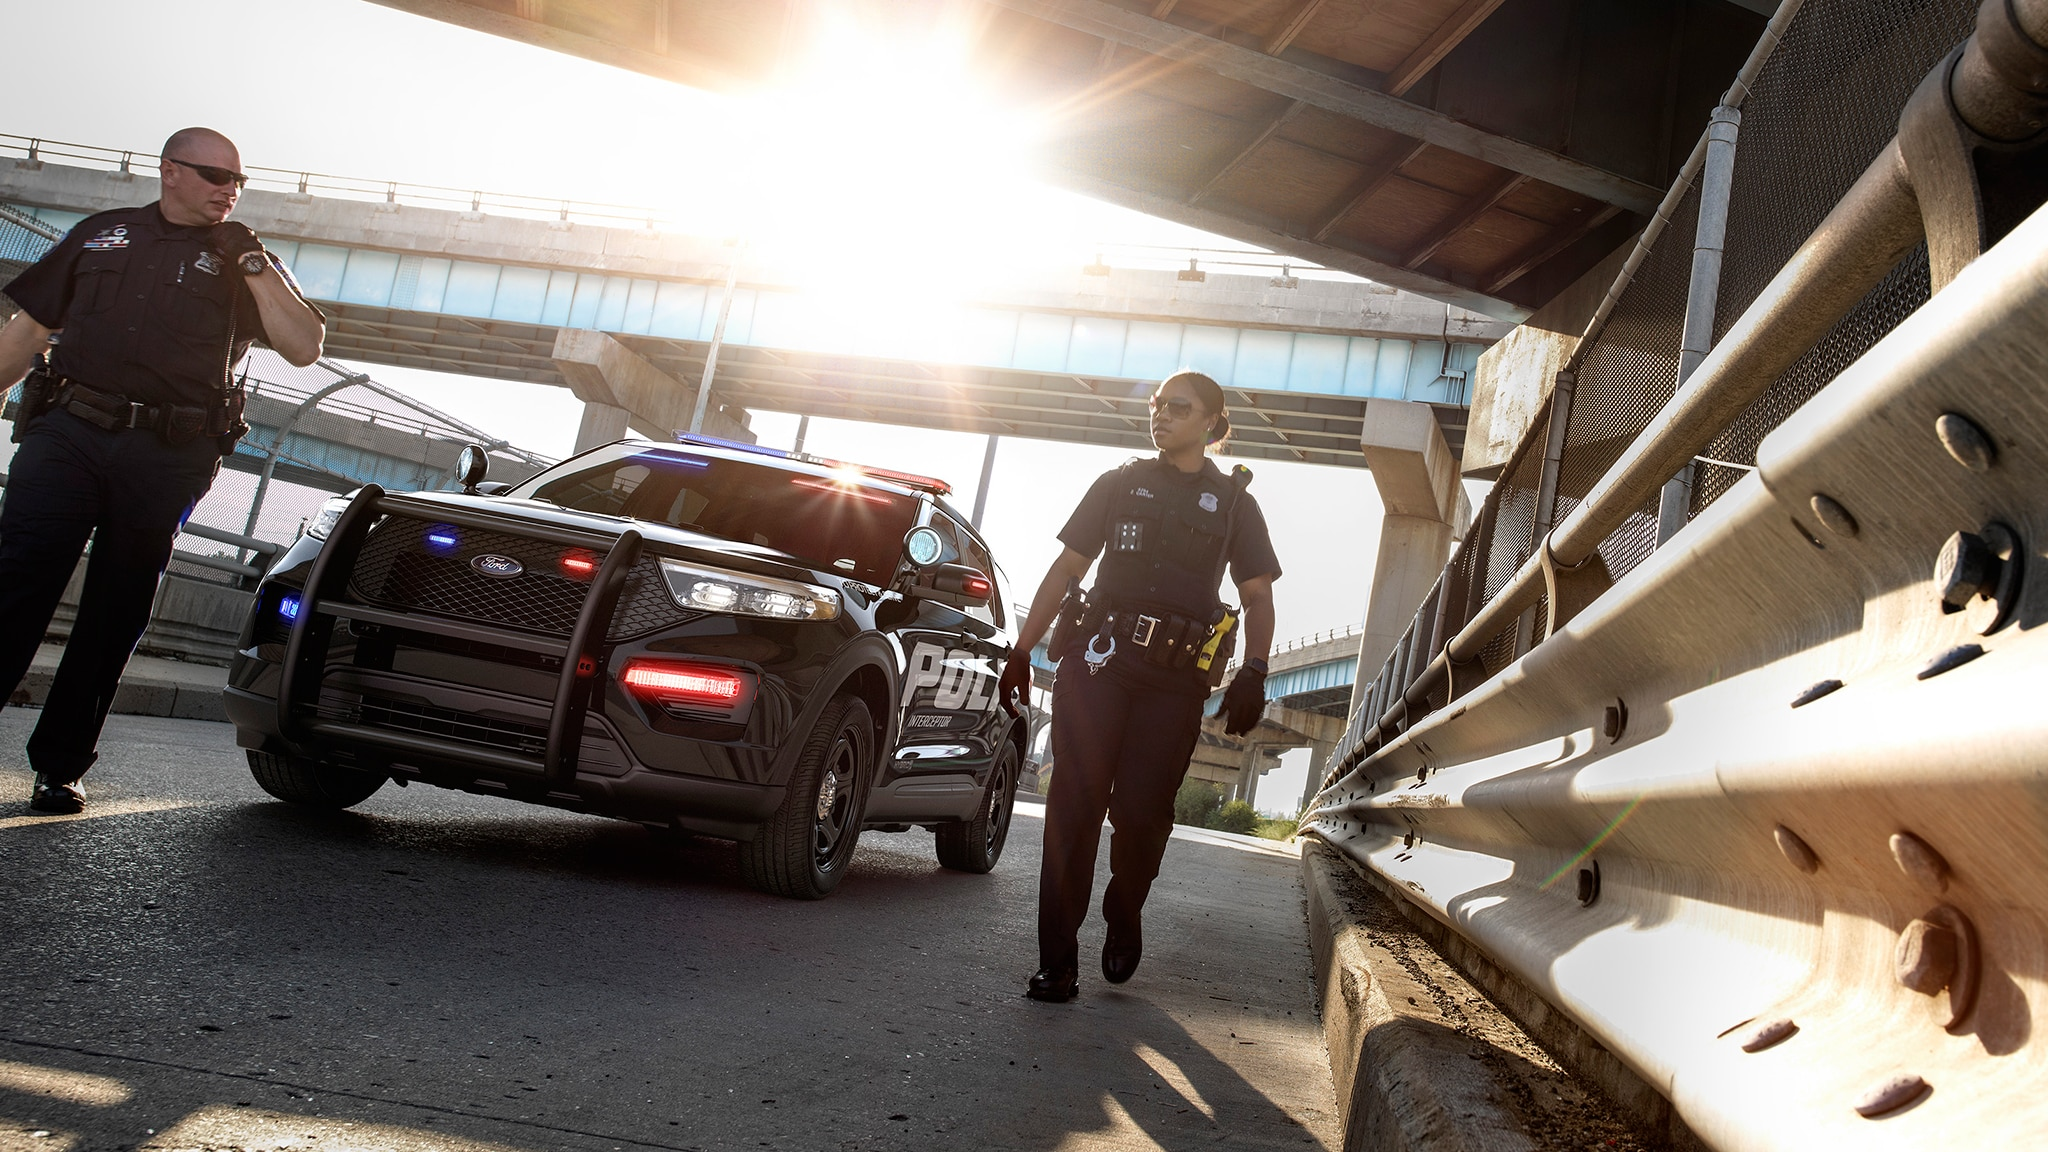 Ford Police Interceptor Utility Is Lean, Mean, and Green